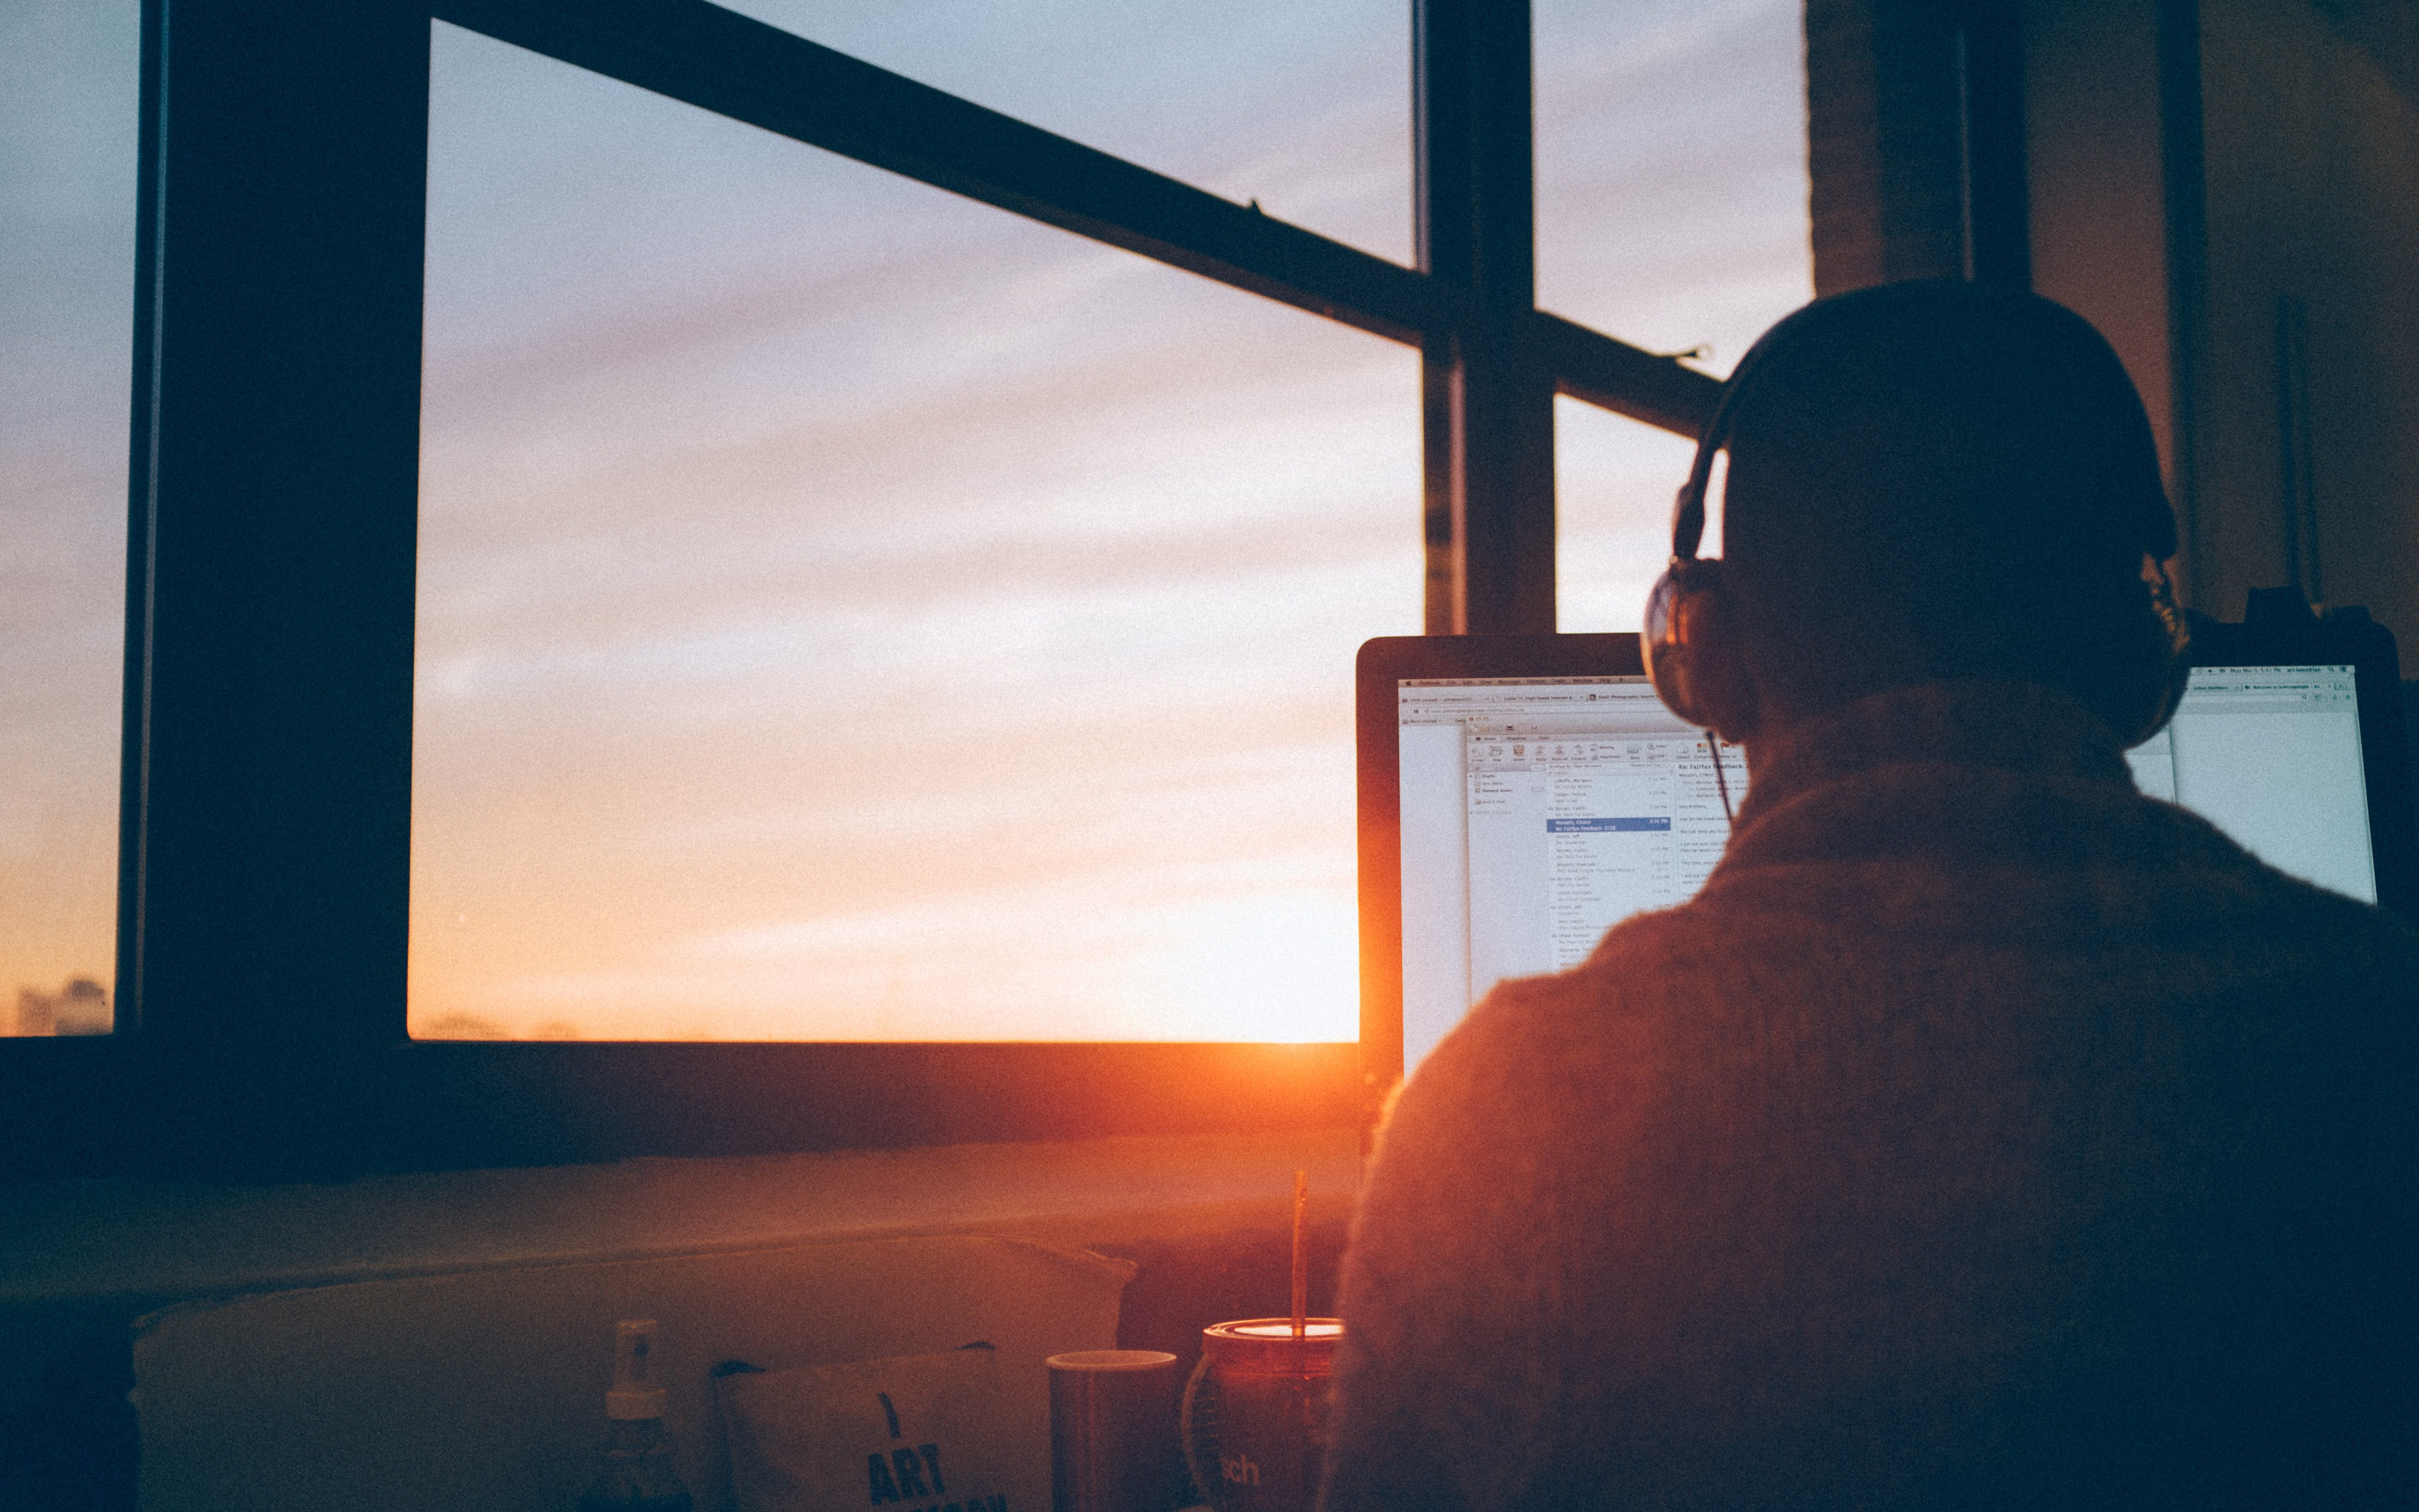 8 DevOps Experiences to Take Into Account in Your Next Project - RapidAPI